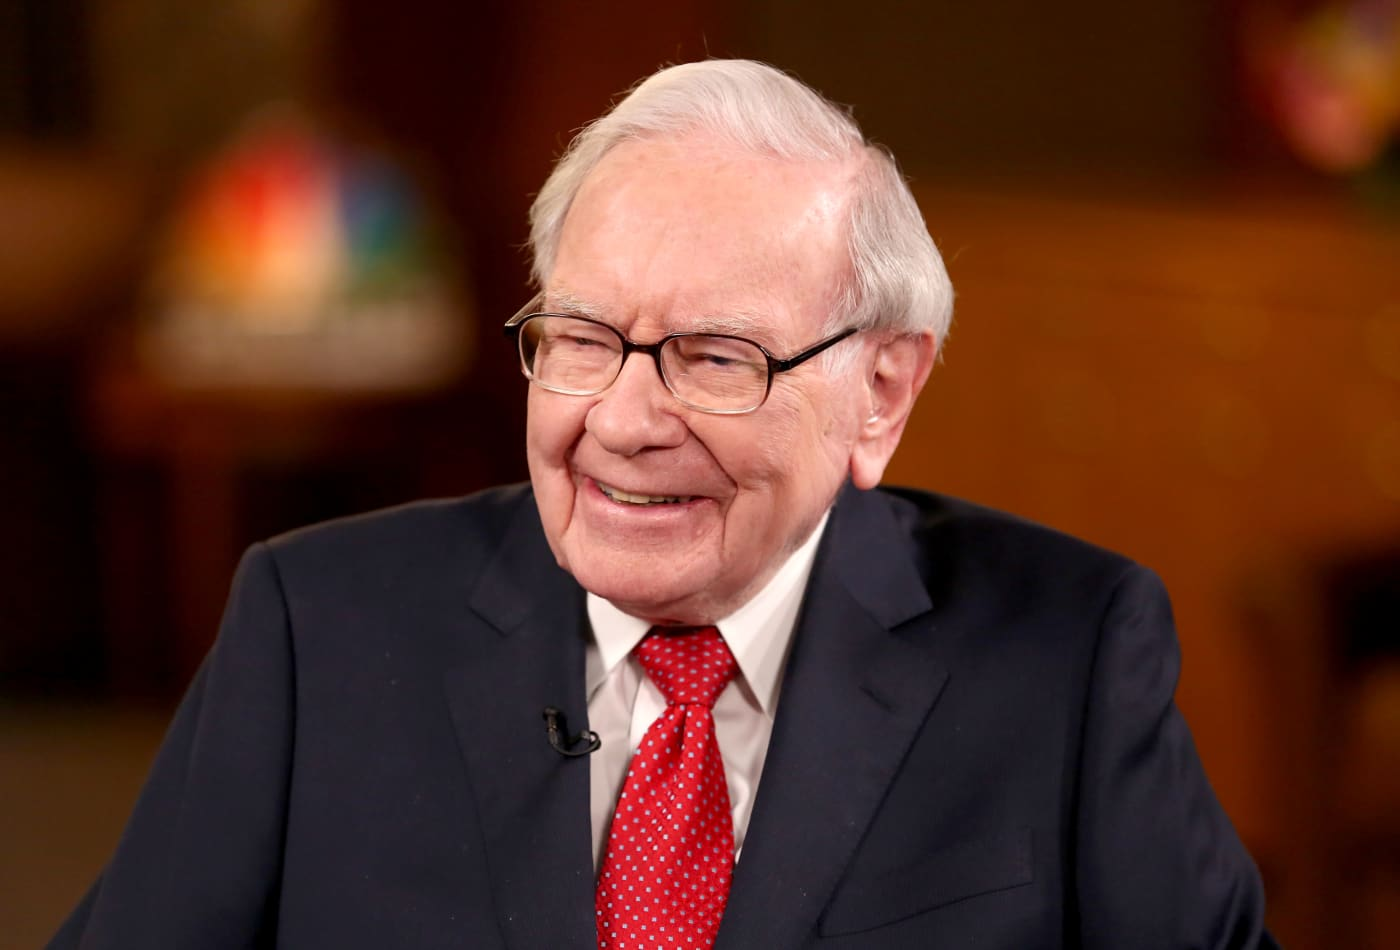 New research going back 120 years backs up Warren Buffett's simple advice for investing